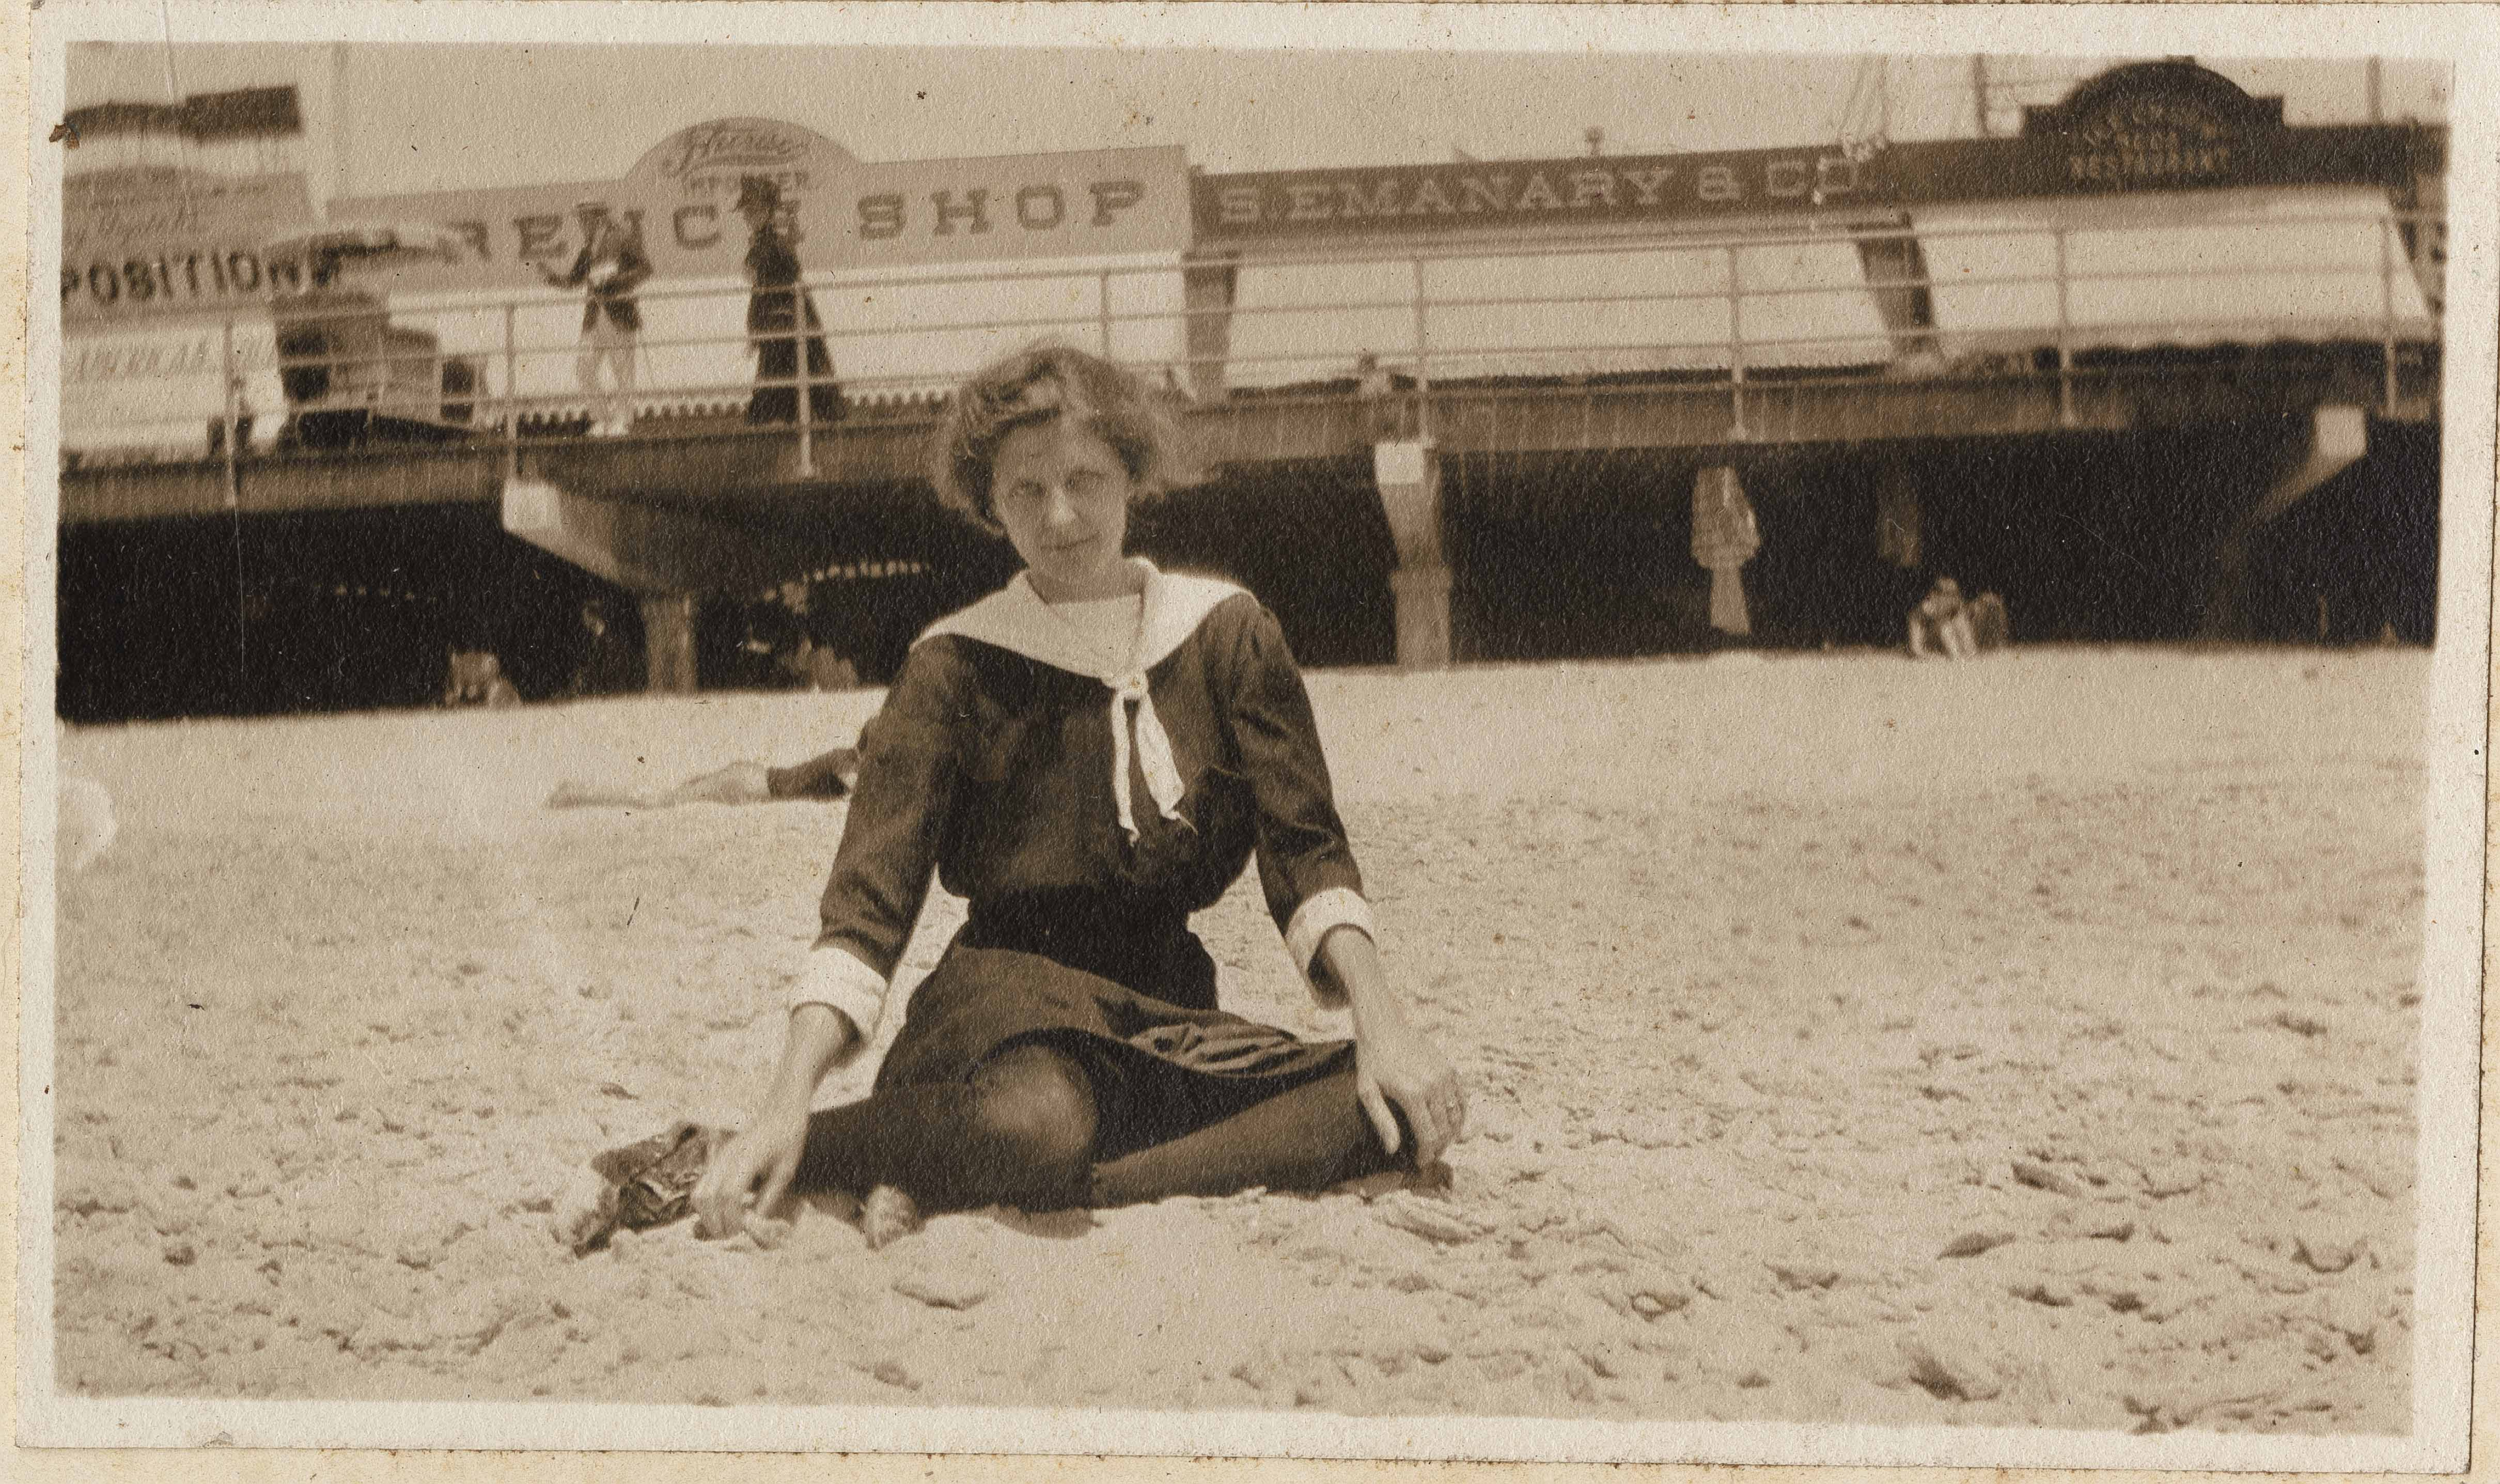 Pauline Donner in front of boardwalk at beach